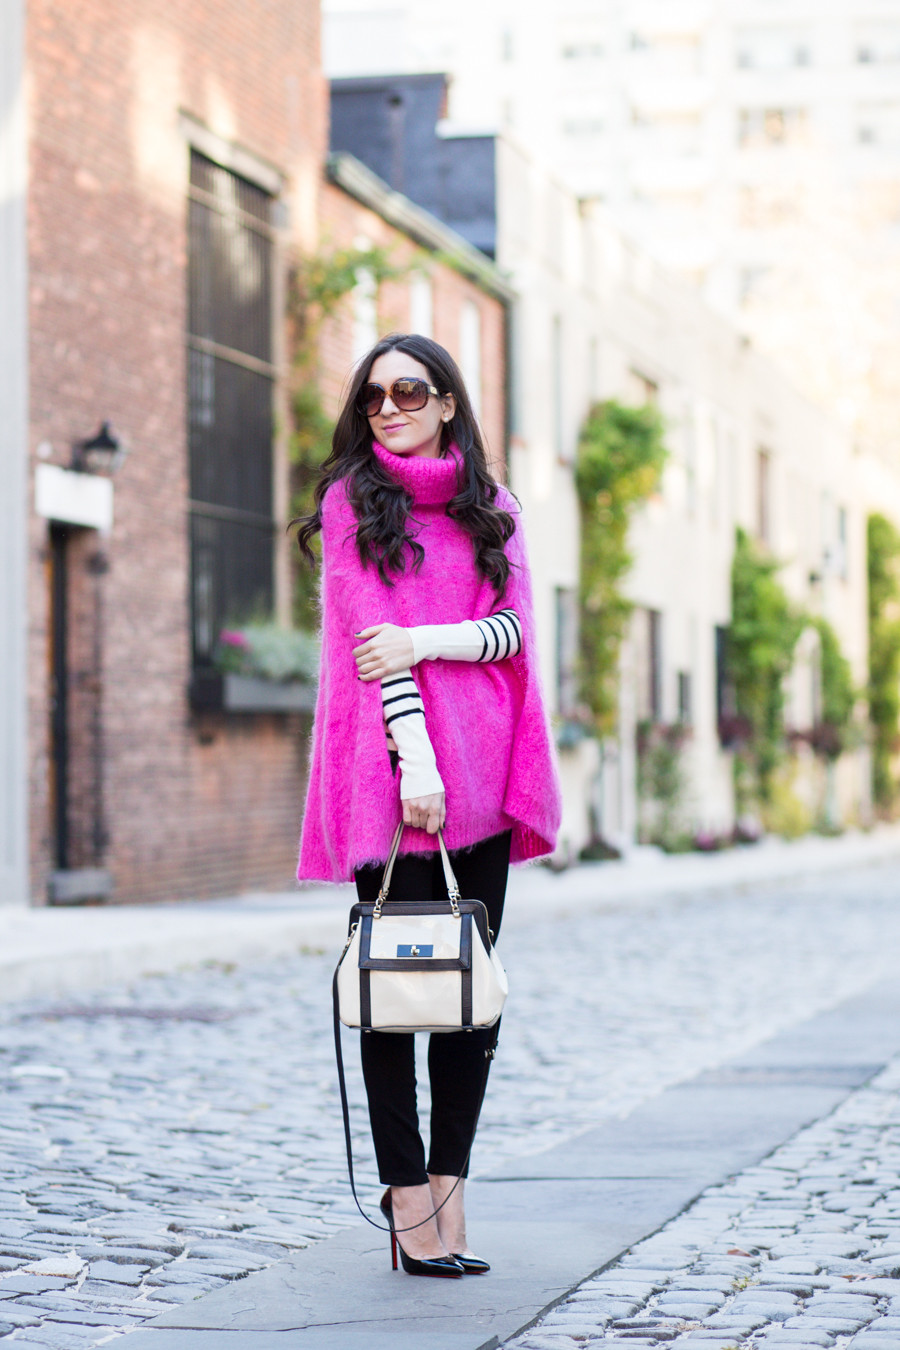 Kate Spade Chunky Knit Sweater Cape, Kate Spade Cape, Pink Cape, Pink Sweater Cape, Bright Pink Sweater Cape, Poncho, Bright Pink Poncho, Christian Louboutin Pigalle 120 mm, Pigalle Black Patent Leather, Pigalle 120 mm, Parker Smith Jean, Parker Smith Jeans Black, Parker Smith Jeans Ava in Eternal Black, J.Crew Factory Striped Button Mockneck Sweater, J.Crew Factory Mockneck Sweater, Factory Striped Turtleneck, Black and White Turtleneck, Black and White Striped Turtleneck